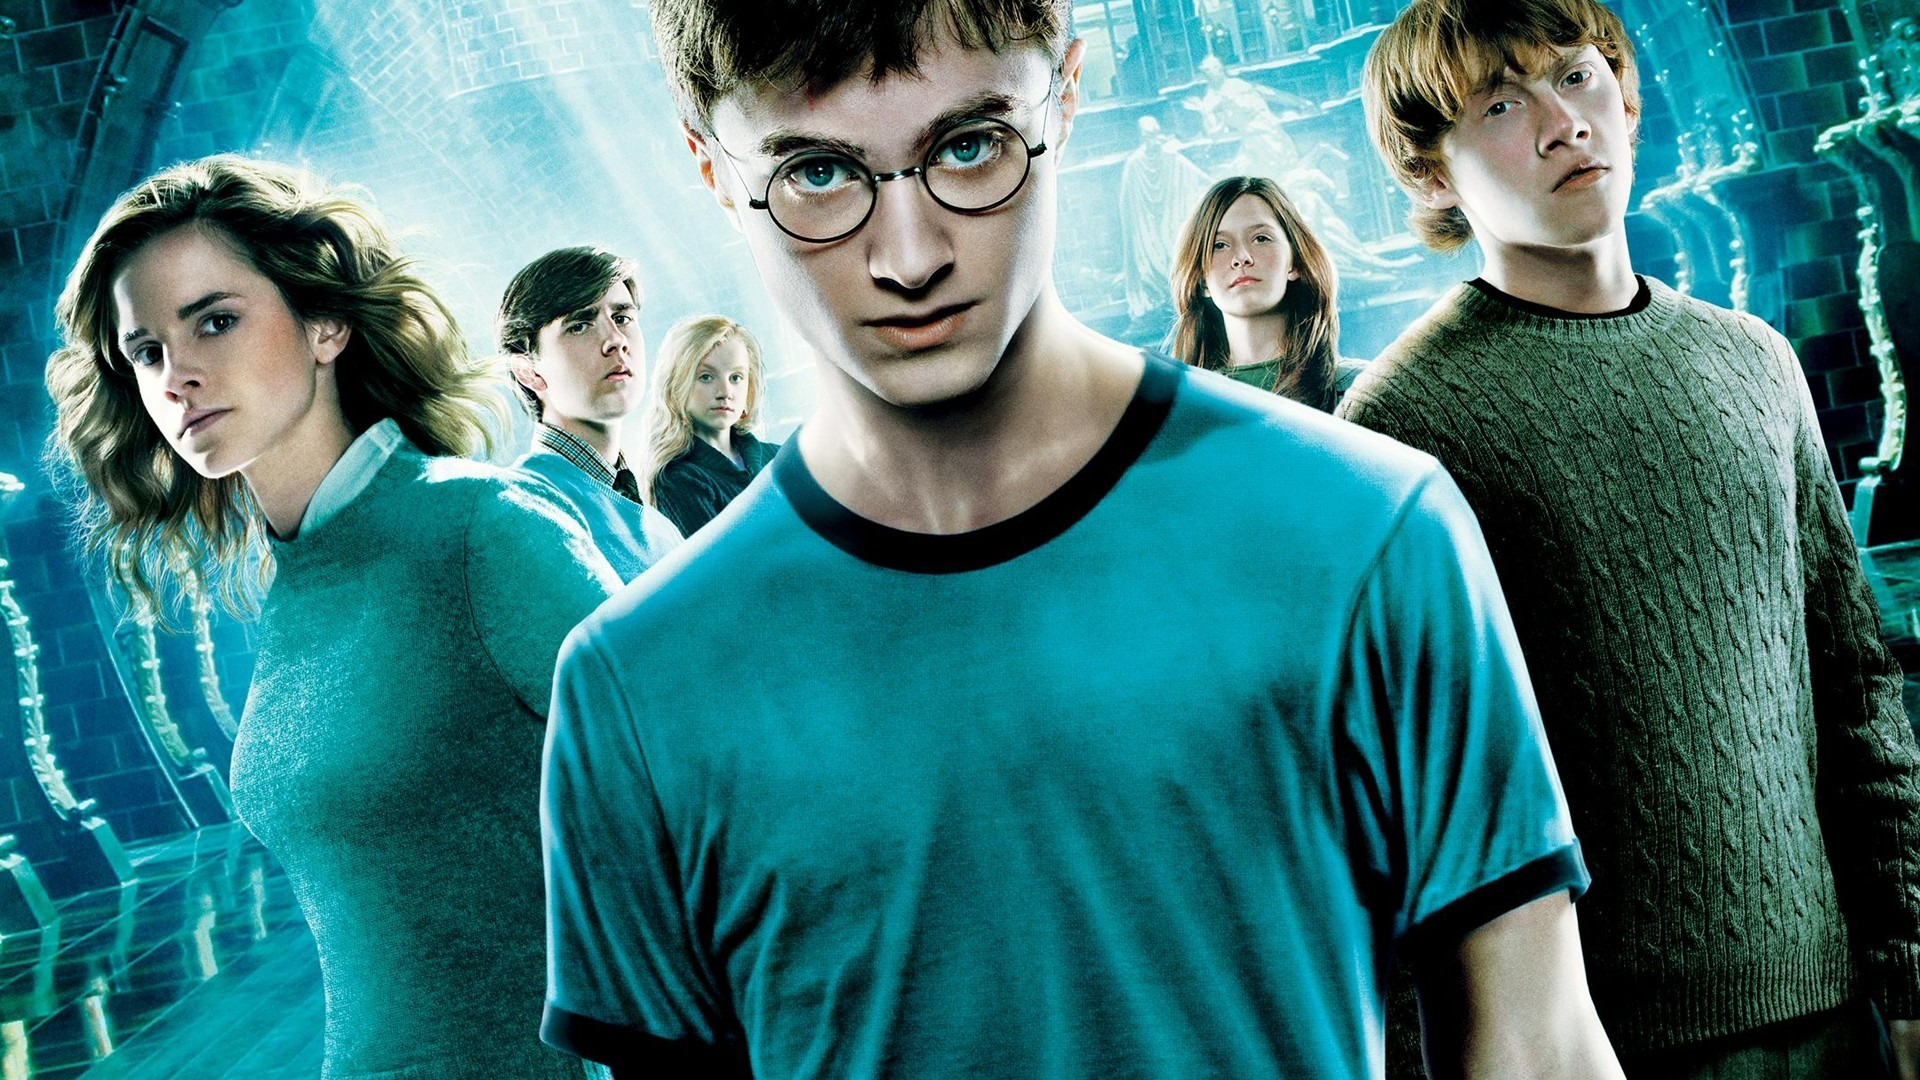 … Amazing 3D Harry Potter Wallpaper Wallpaper HD 1080p Free Download For  Laptop Wallpapers 4K Full HD